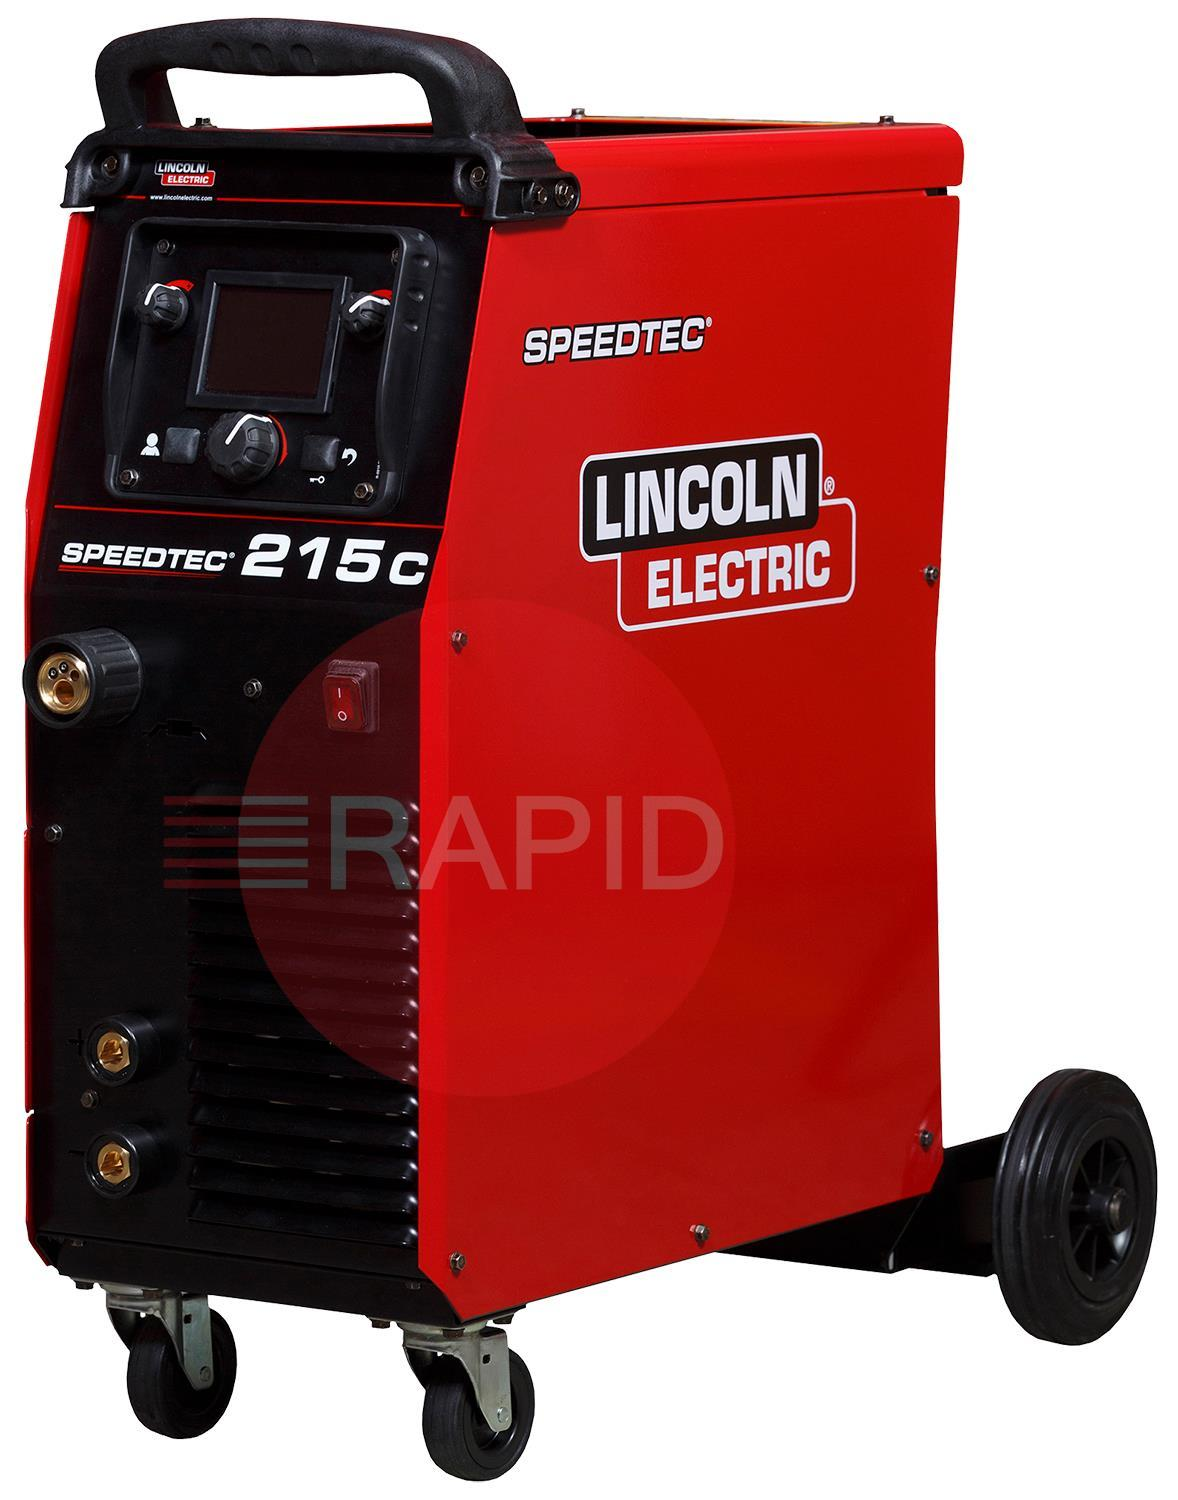 Buy Lincoln Electric Speedtec 215c Multi Process Compact Inverter Welder And Generator Parts K14146 1 110 230v Phase